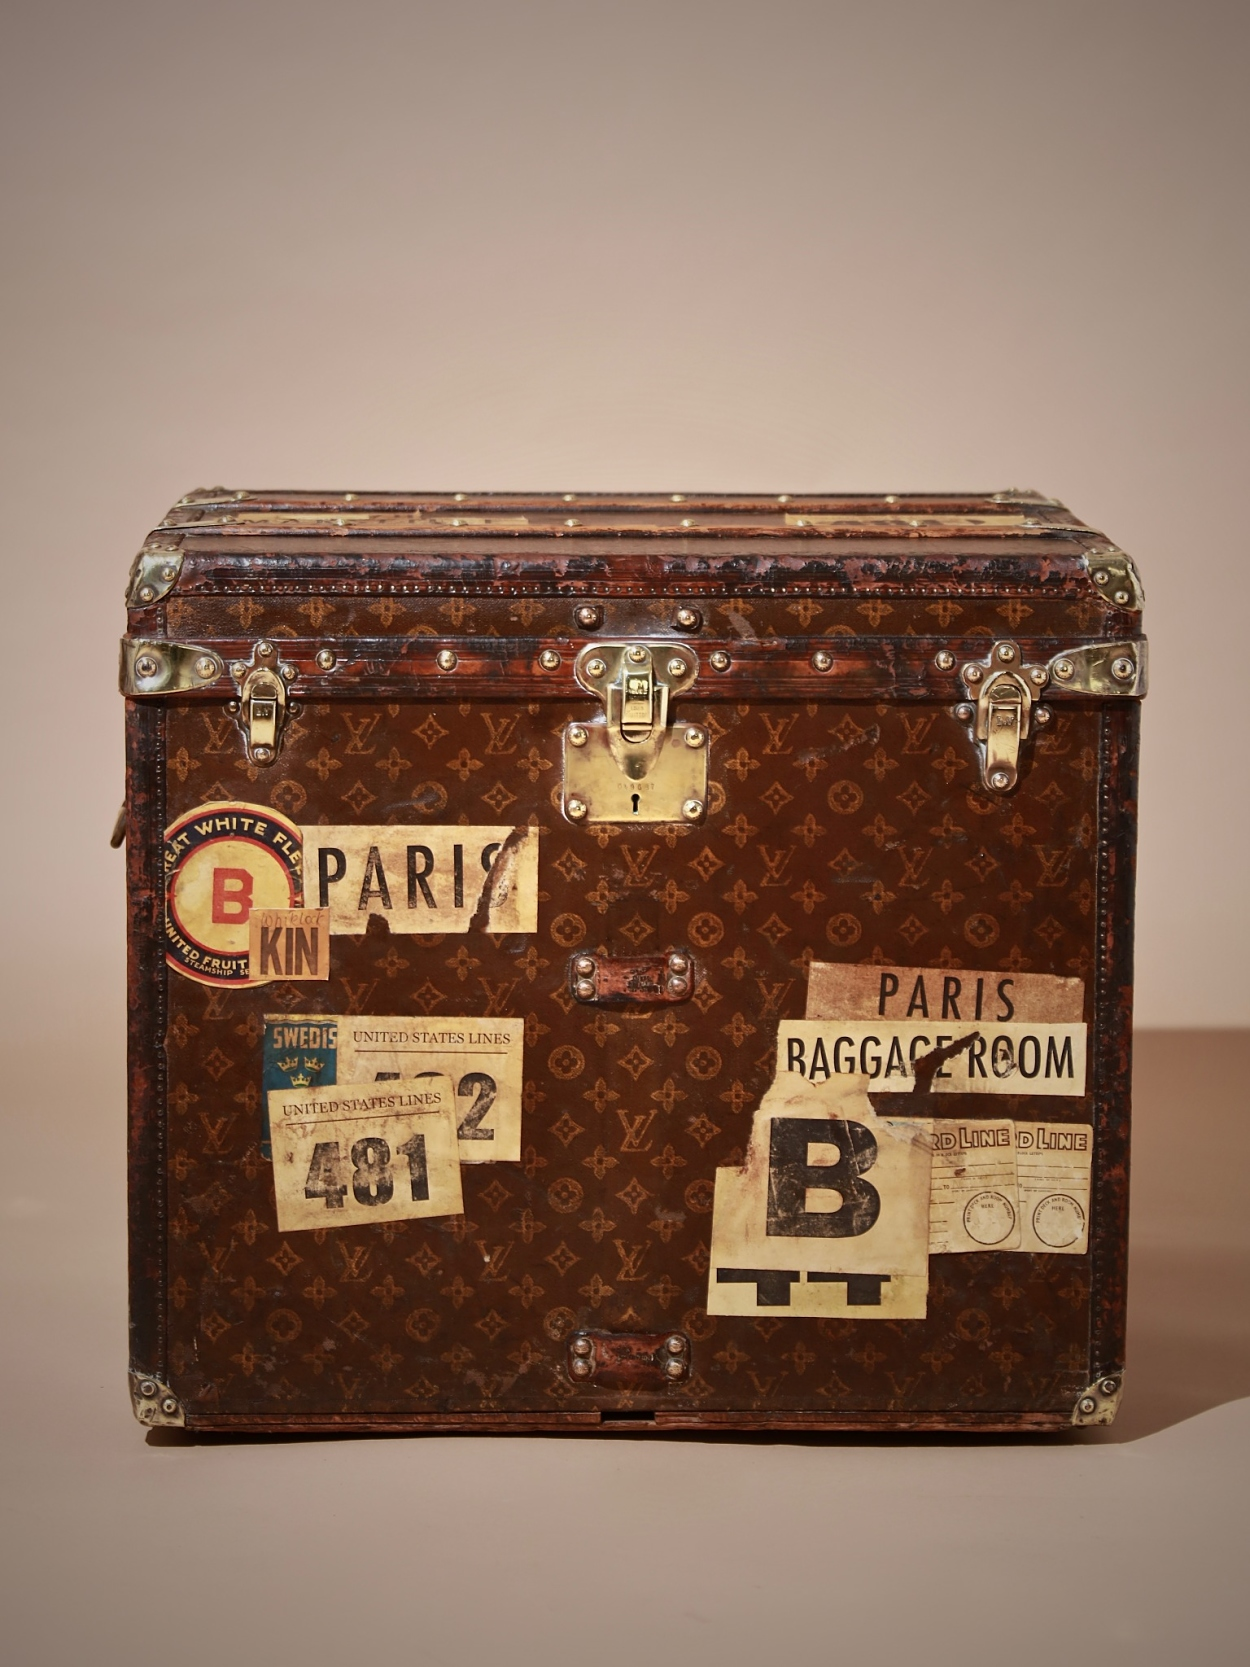 the-well-traveled-trunk-louis-vuitton-thumbnail-product-5728-1